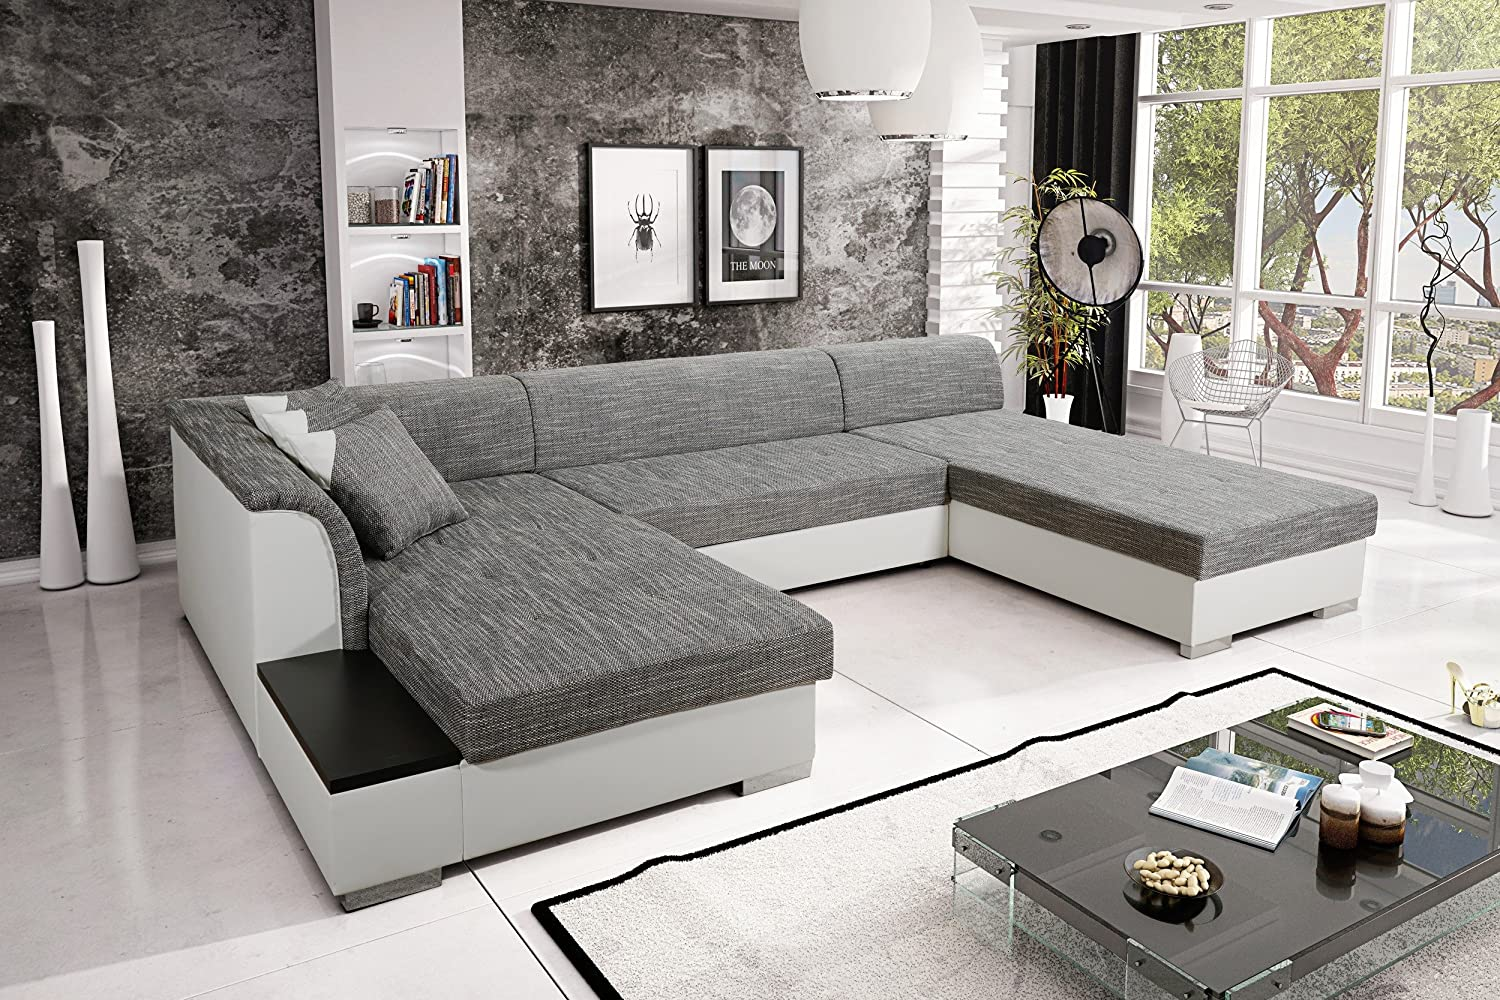 sofa couchgarnitur couch sofagarnitur kreta 4 u. Black Bedroom Furniture Sets. Home Design Ideas